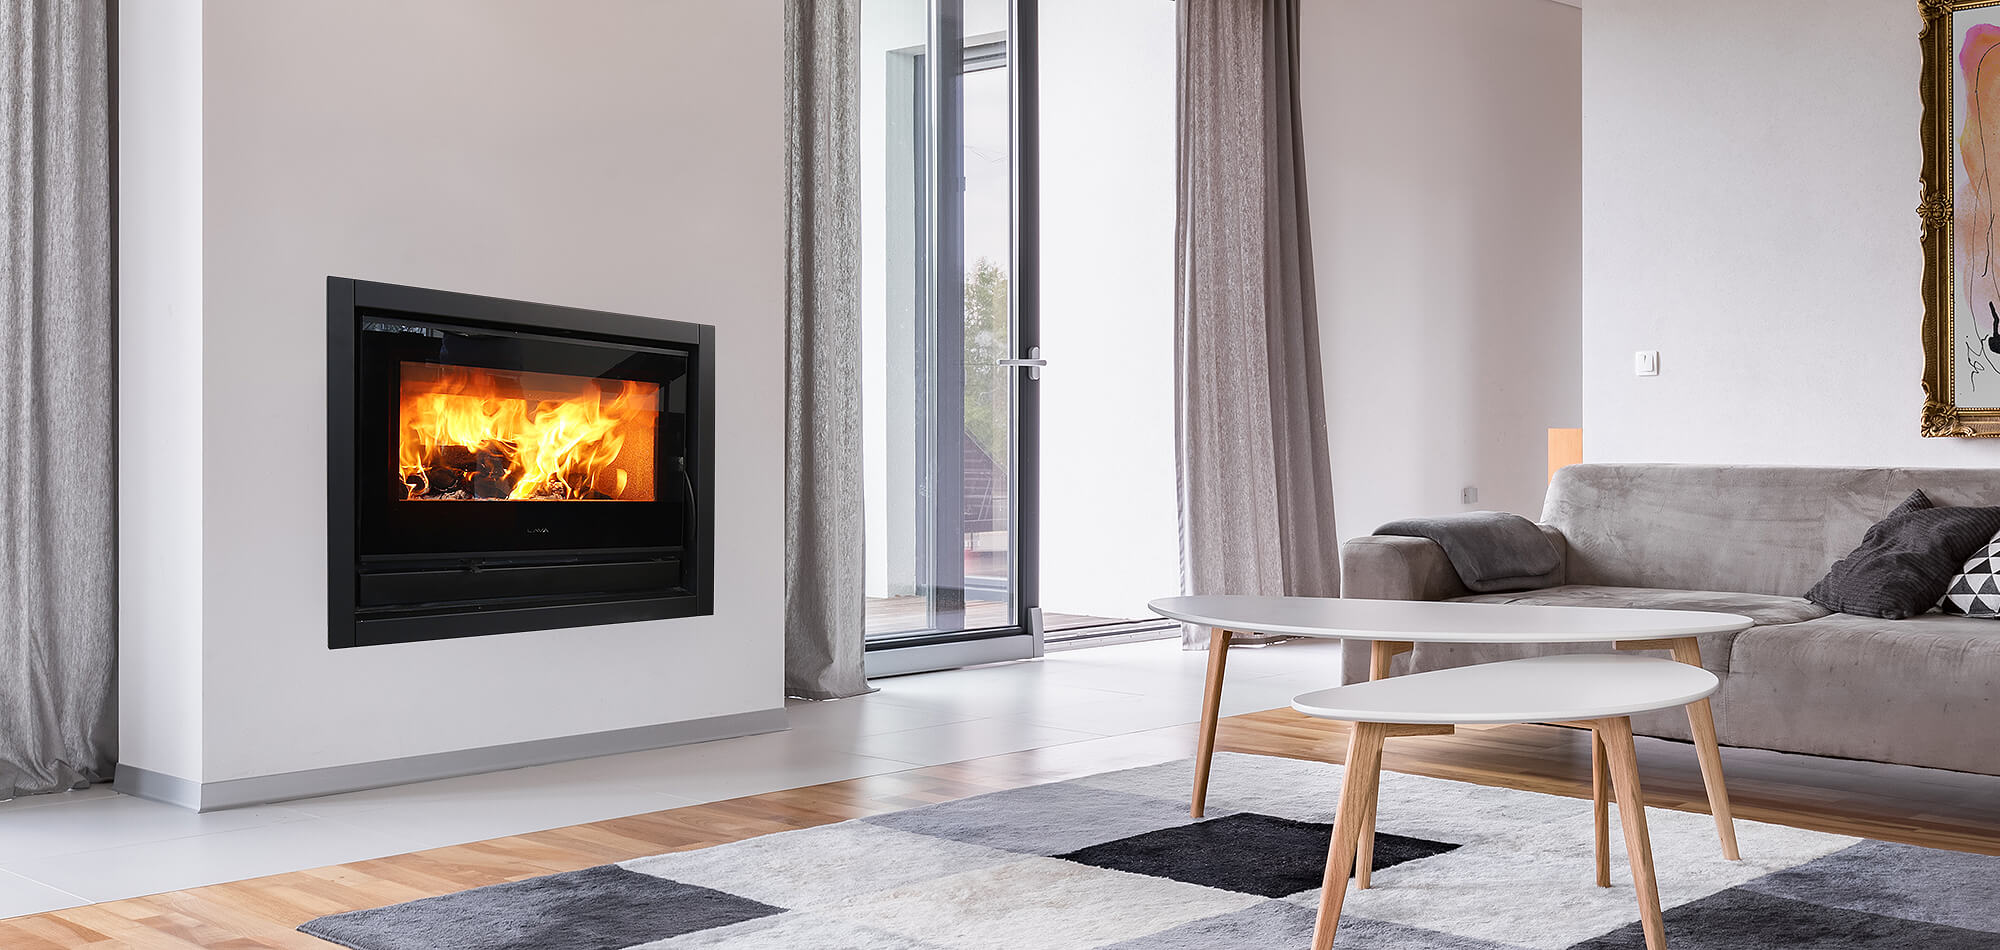 CUBO 700 Air - Closed Compbustion Wood Insert Fireplace, Modern Fireplace, Wide Black Tinted Glass